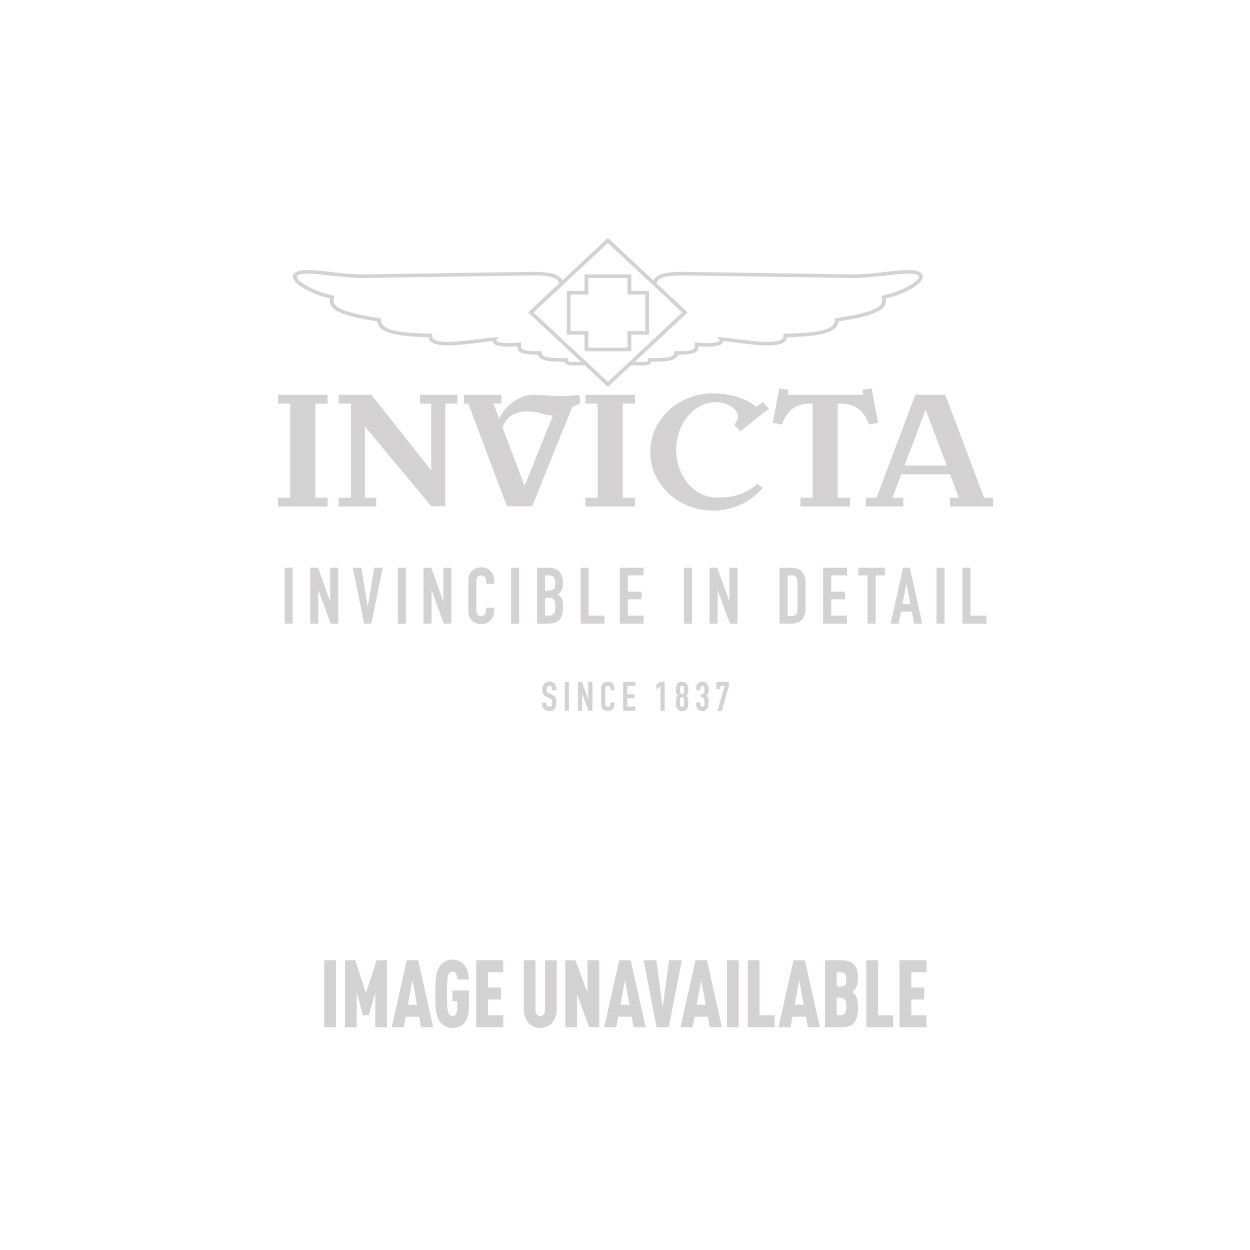 Invicta Angel Swiss Movement Quartz Watch - Stainless Steel case Stainless Steel band - Model 19872